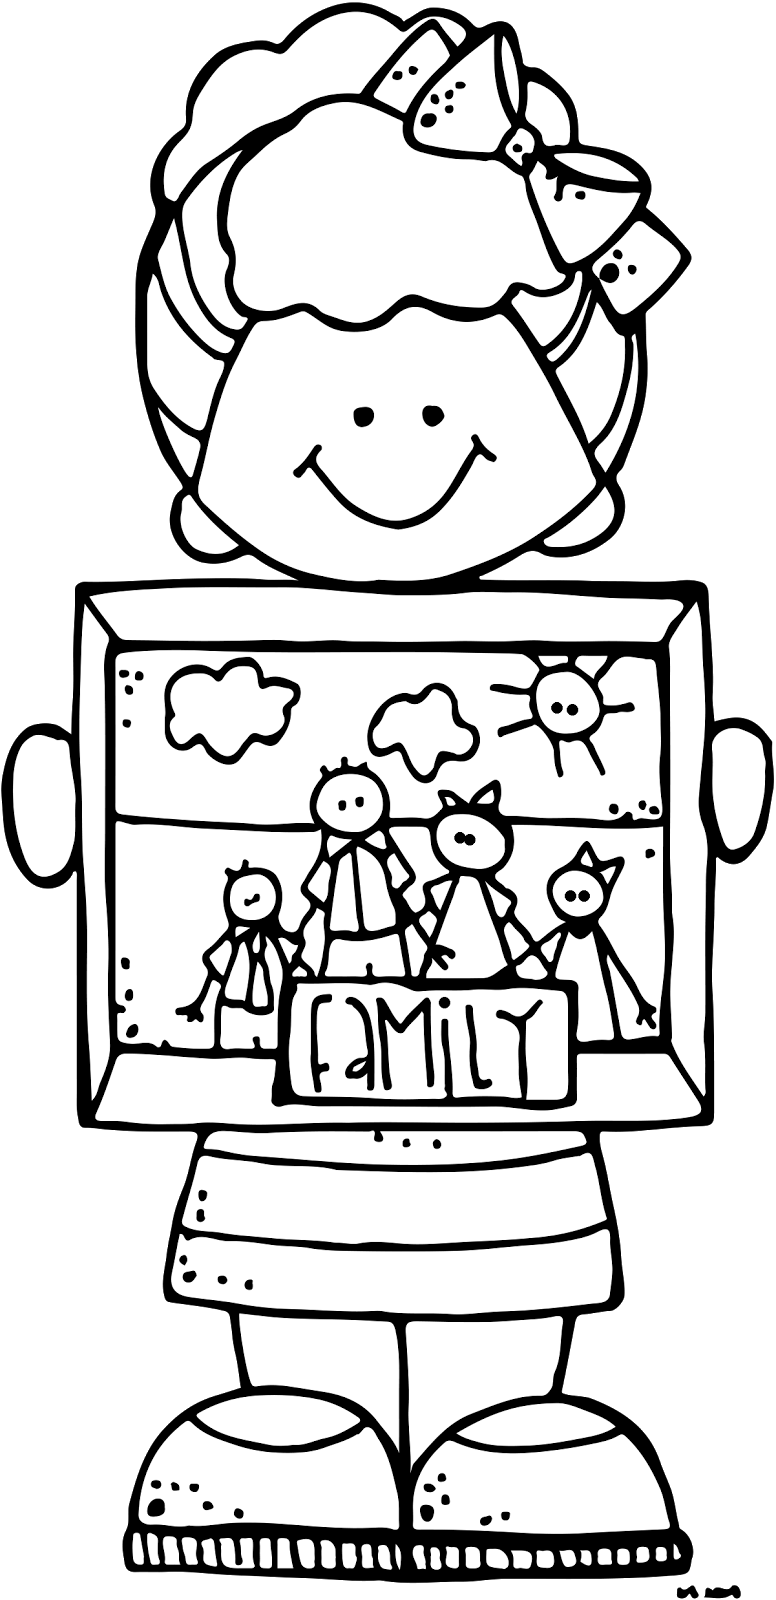 clip art download Melonheadz illustrating light the. Lds family clipart black and white